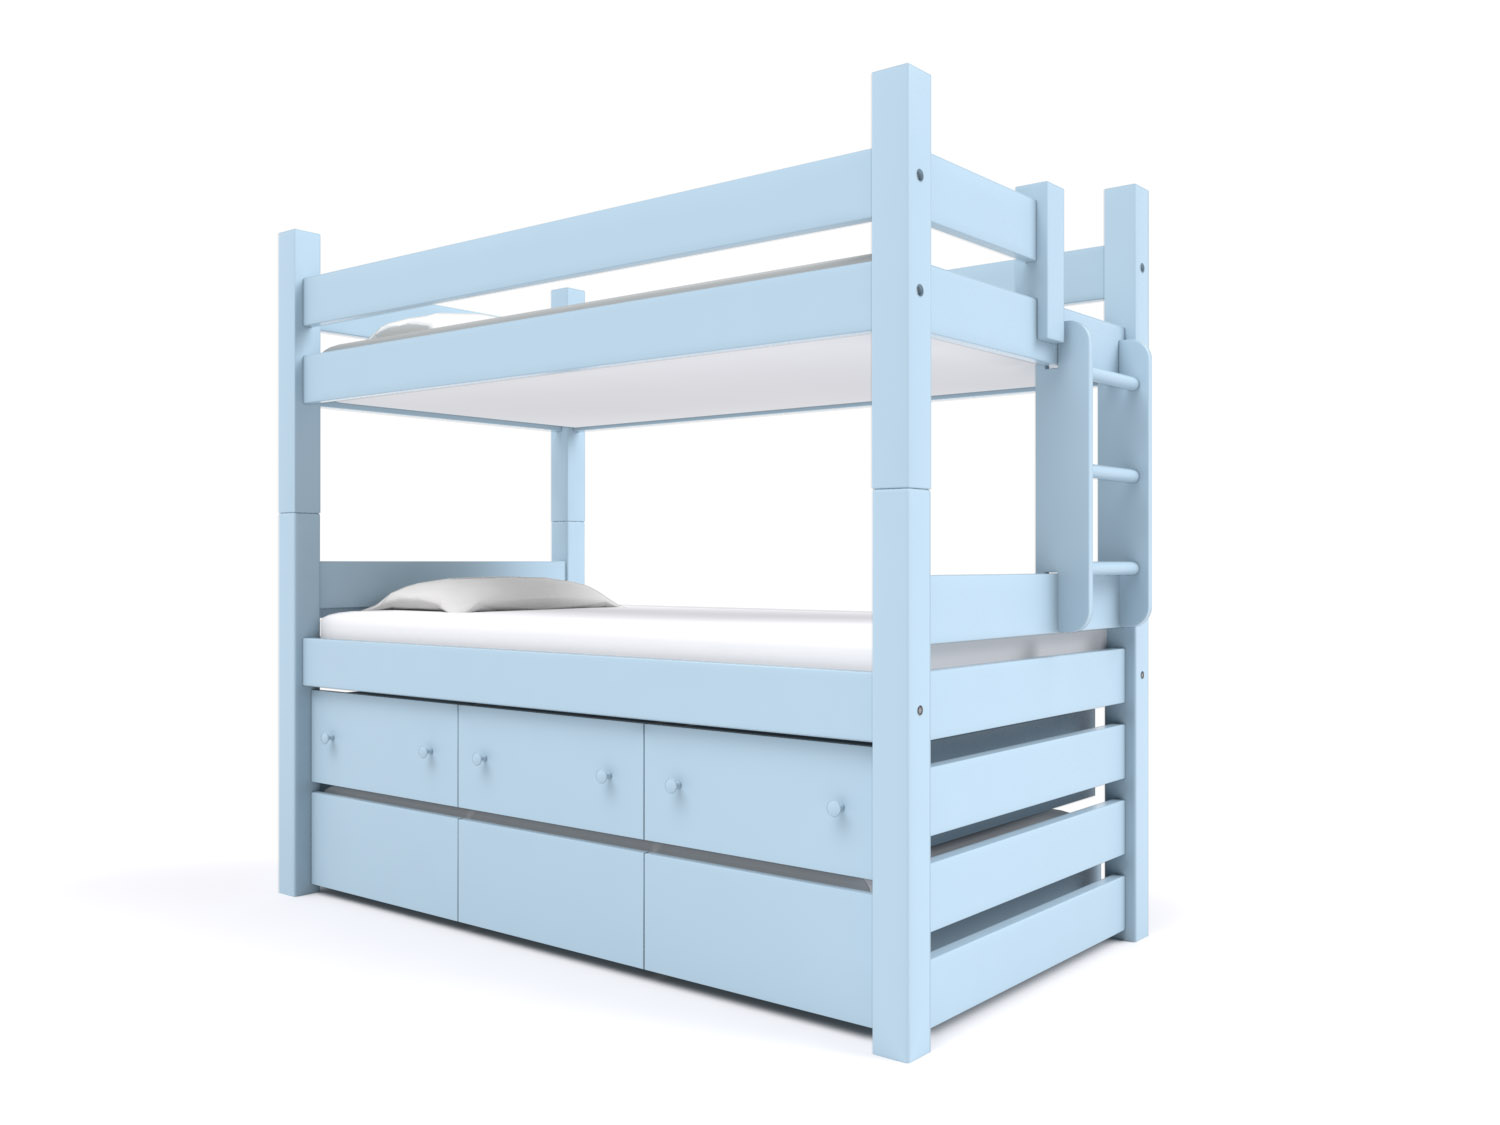 """ CAPTAIN'S"" BUNK""  -  Our classic Captain's Bed includes a Twin Trundle and built-in Storage Drawers under the lower bunk. Options: extra length or height. Made to hold adults!  Starting at $3995:   Click for Custom Quote"